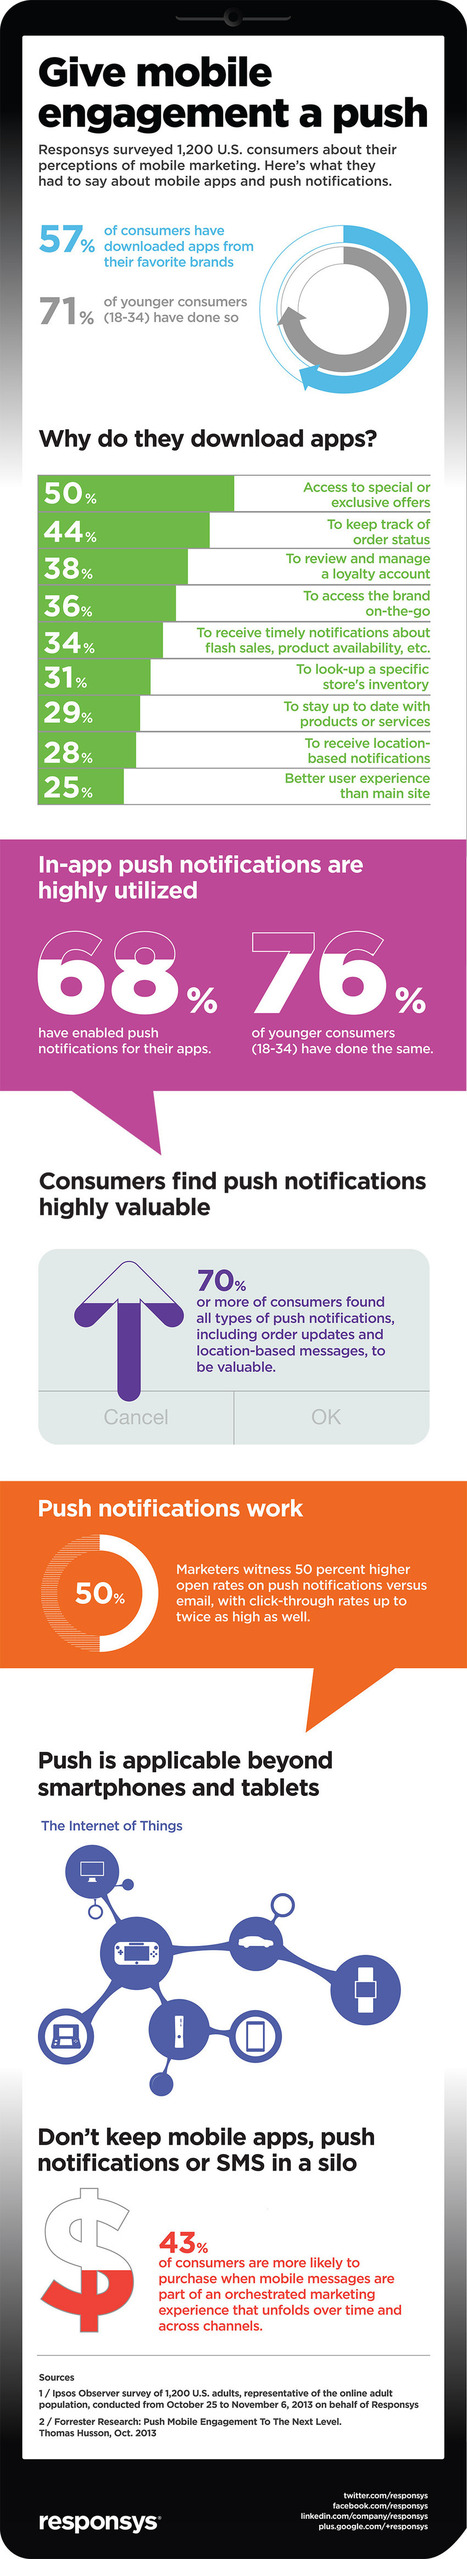 More Than 70% of Consumers Value Push Notifications [Infographic] - SocialTimes | Digital-News on Scoop.it today | Scoop.it